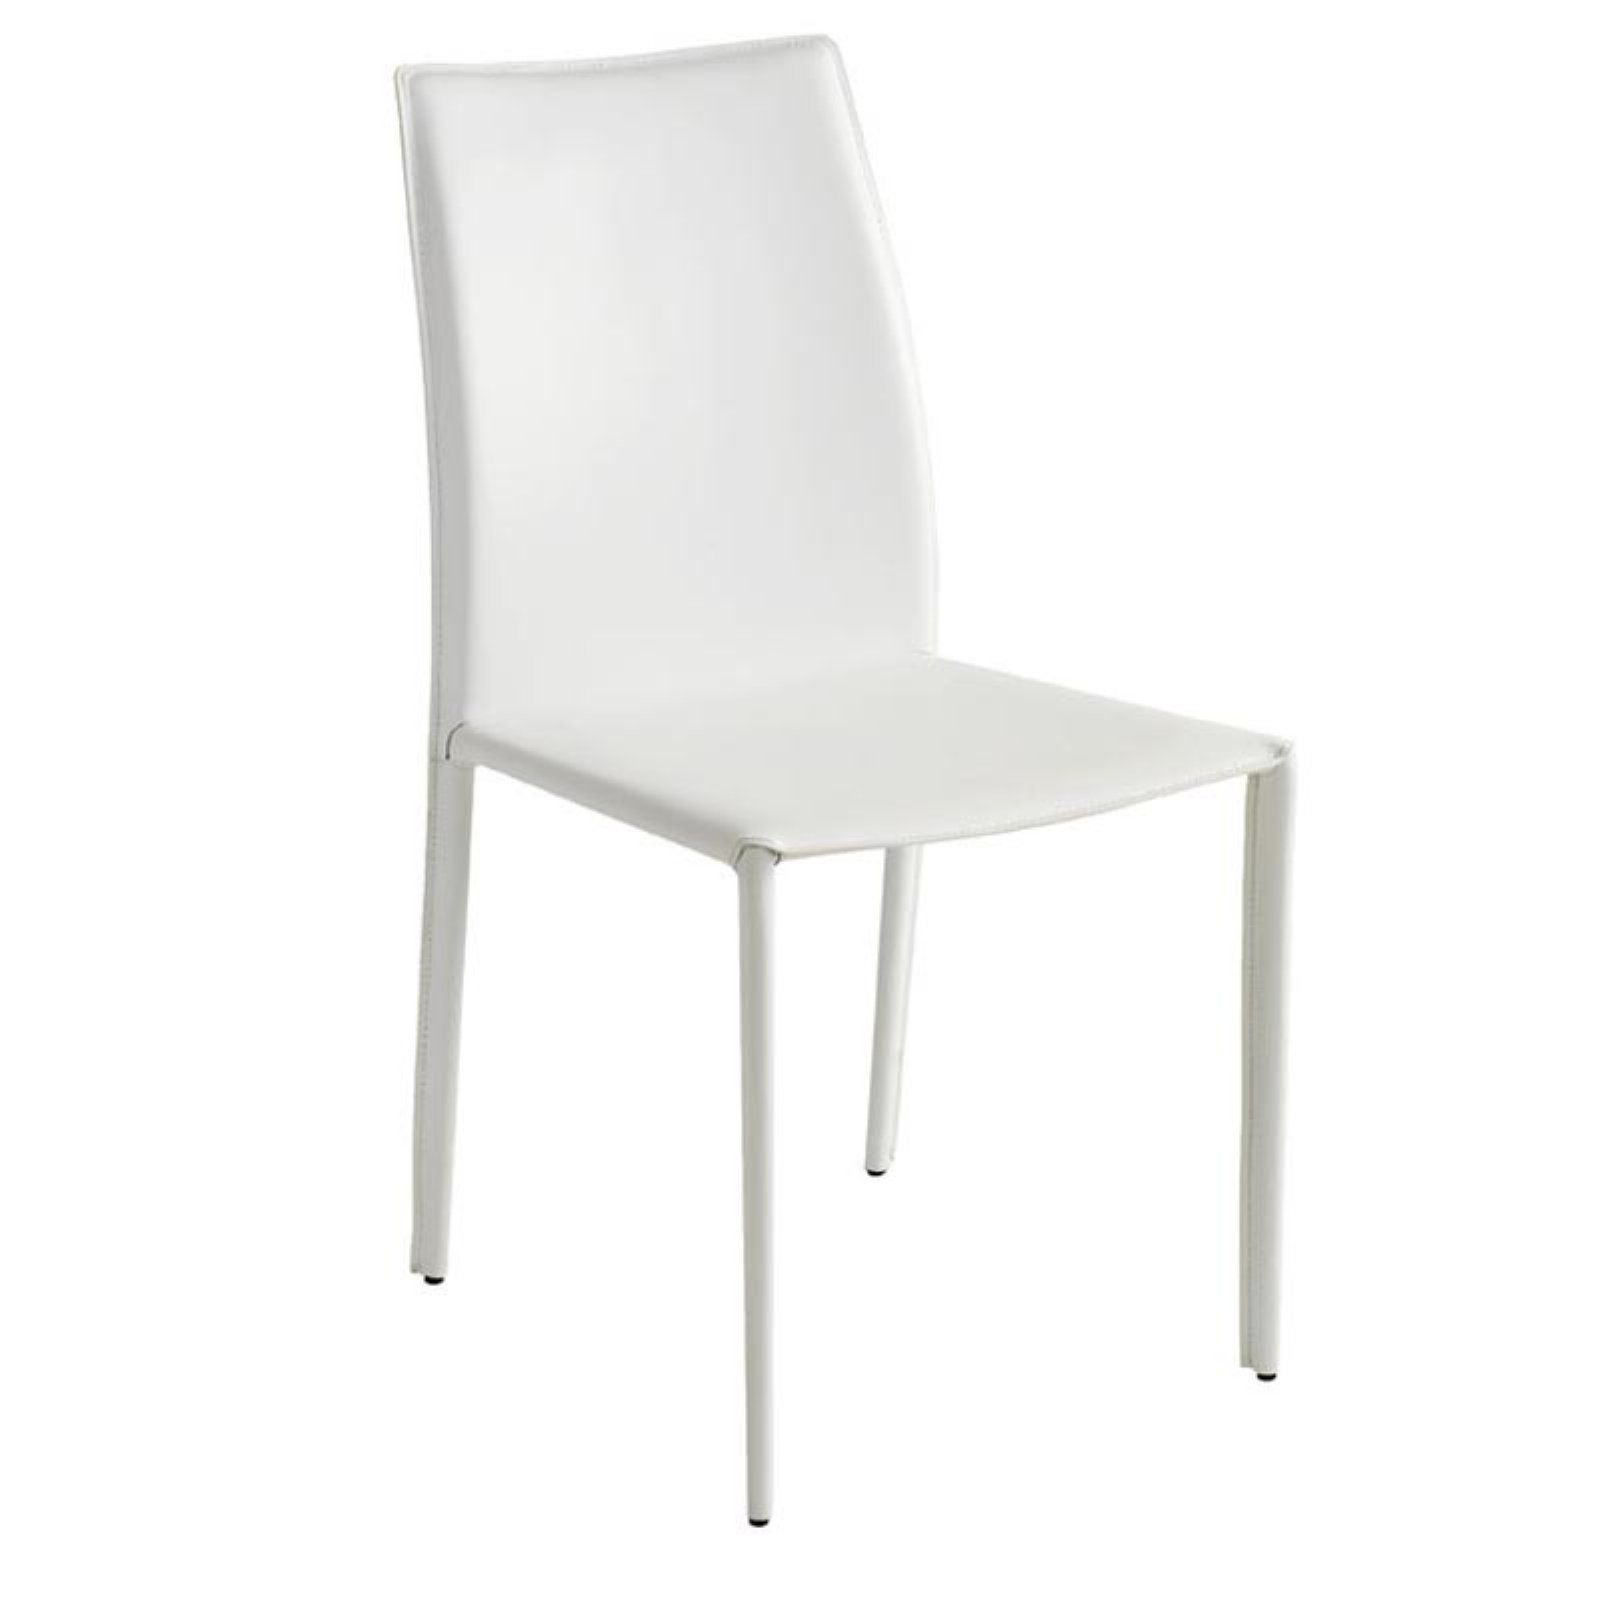 Nuevo sienna dining side chair white dining bench dining furniture white dining chairs